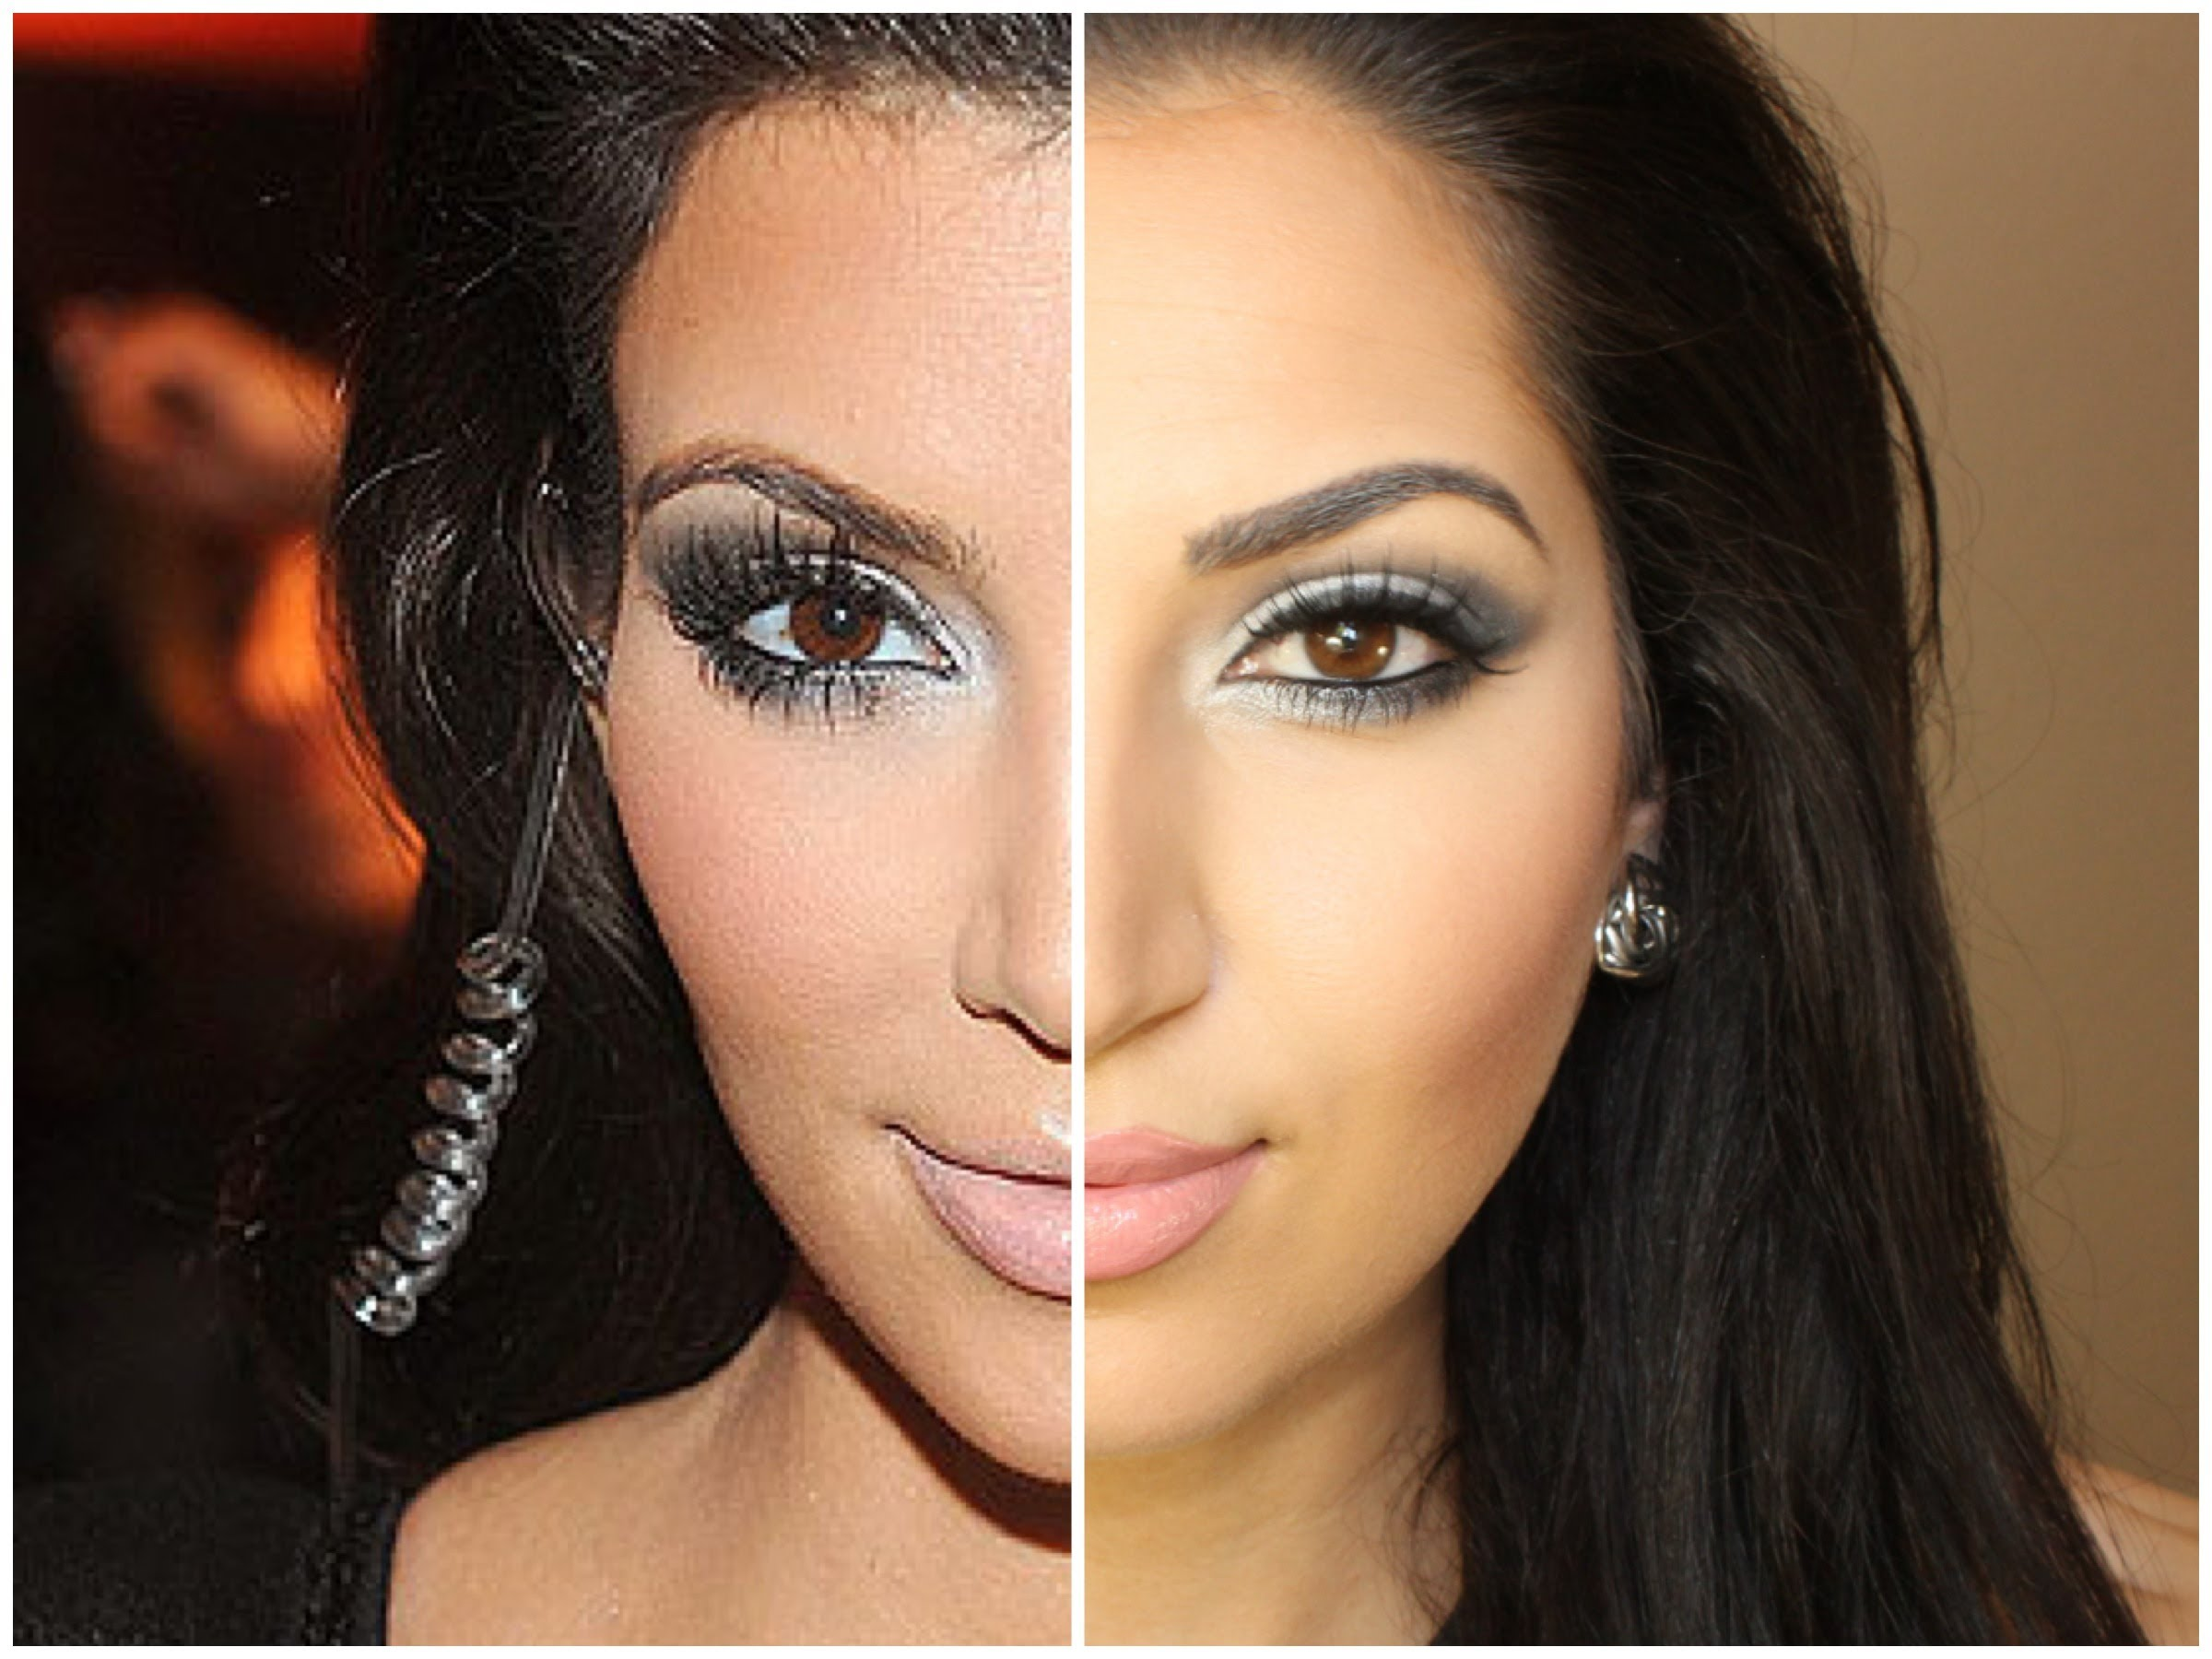 How to recreate Kim Kardashian's eye makeup look in 3 simple